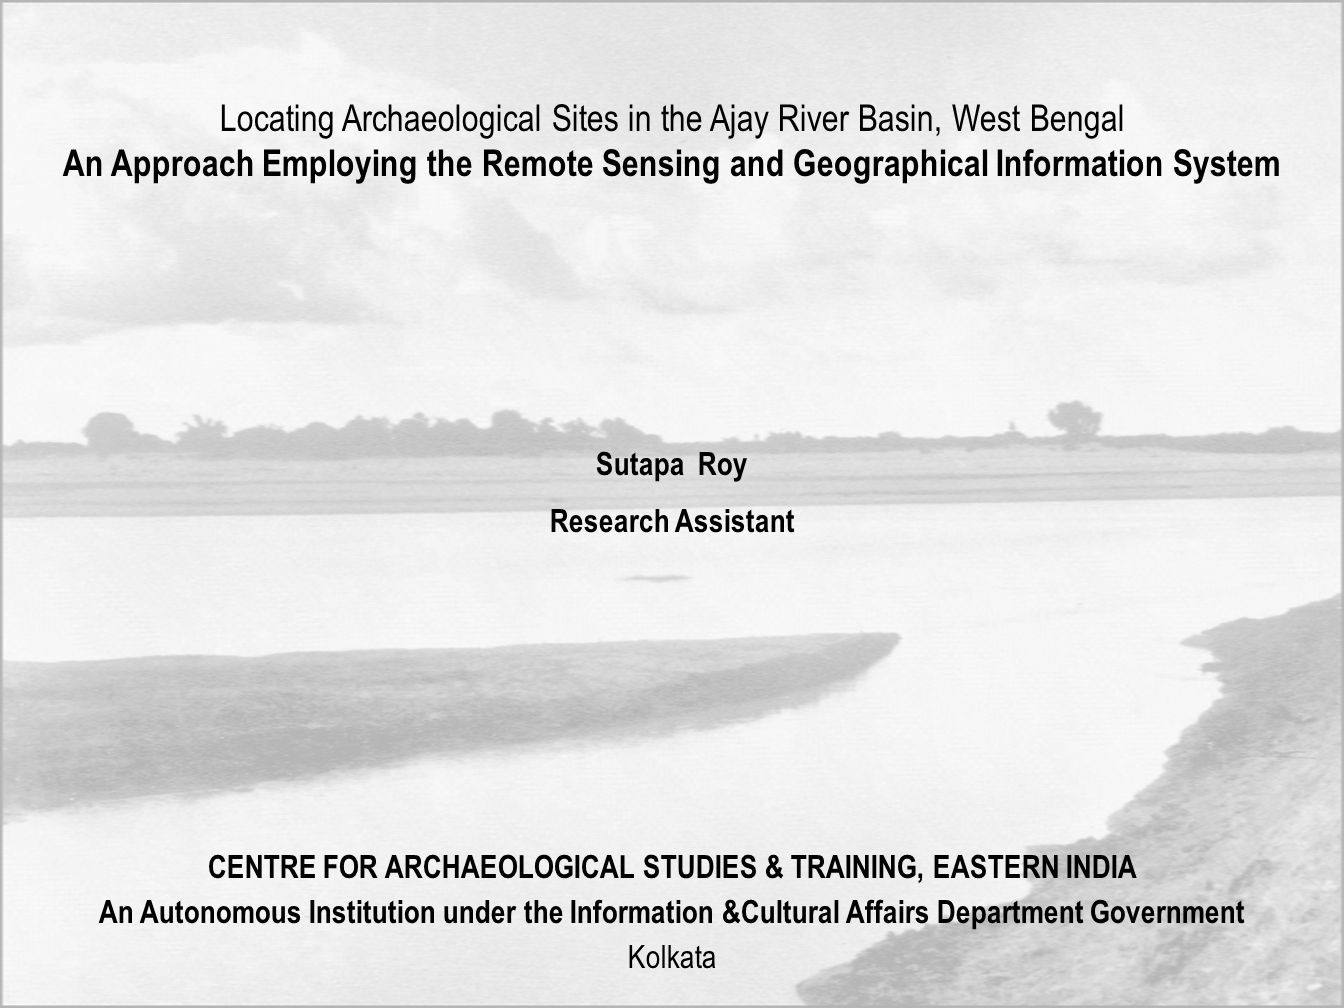 Locating Archaeological Sites in the Ajay River Basin, West Bengal An Approach Employing the Remote Sensing and Geographical Information System Sutapa Roy Research Assistant CENTRE FOR ARCHAEOLOGICAL STUDIES & TRAINING, EASTERN INDIA An Autonomous Institution under the Information &Cultural Affairs Department Government Kolkata